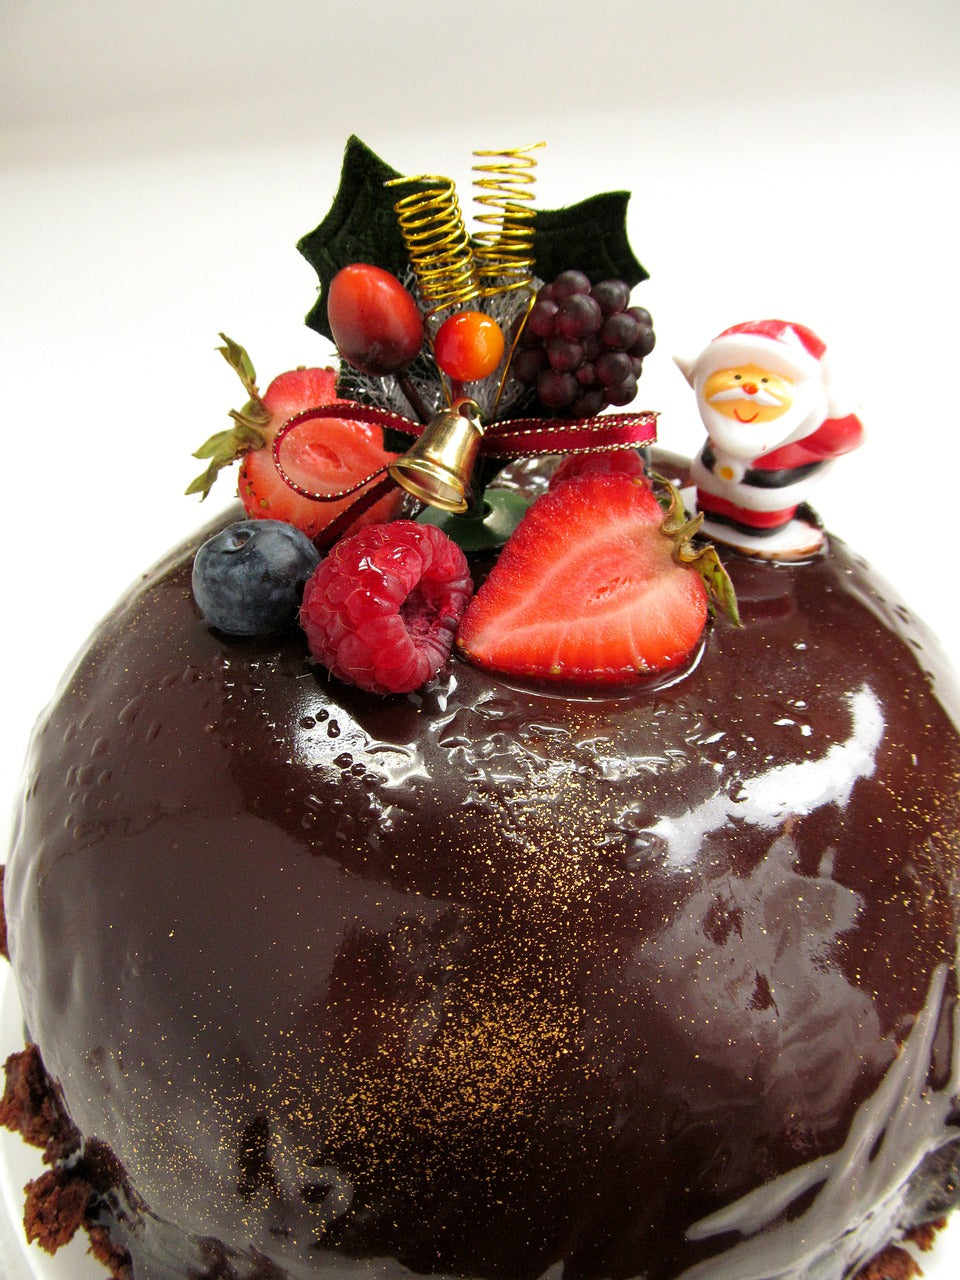 Amazing cakes from three different continents for Christmas